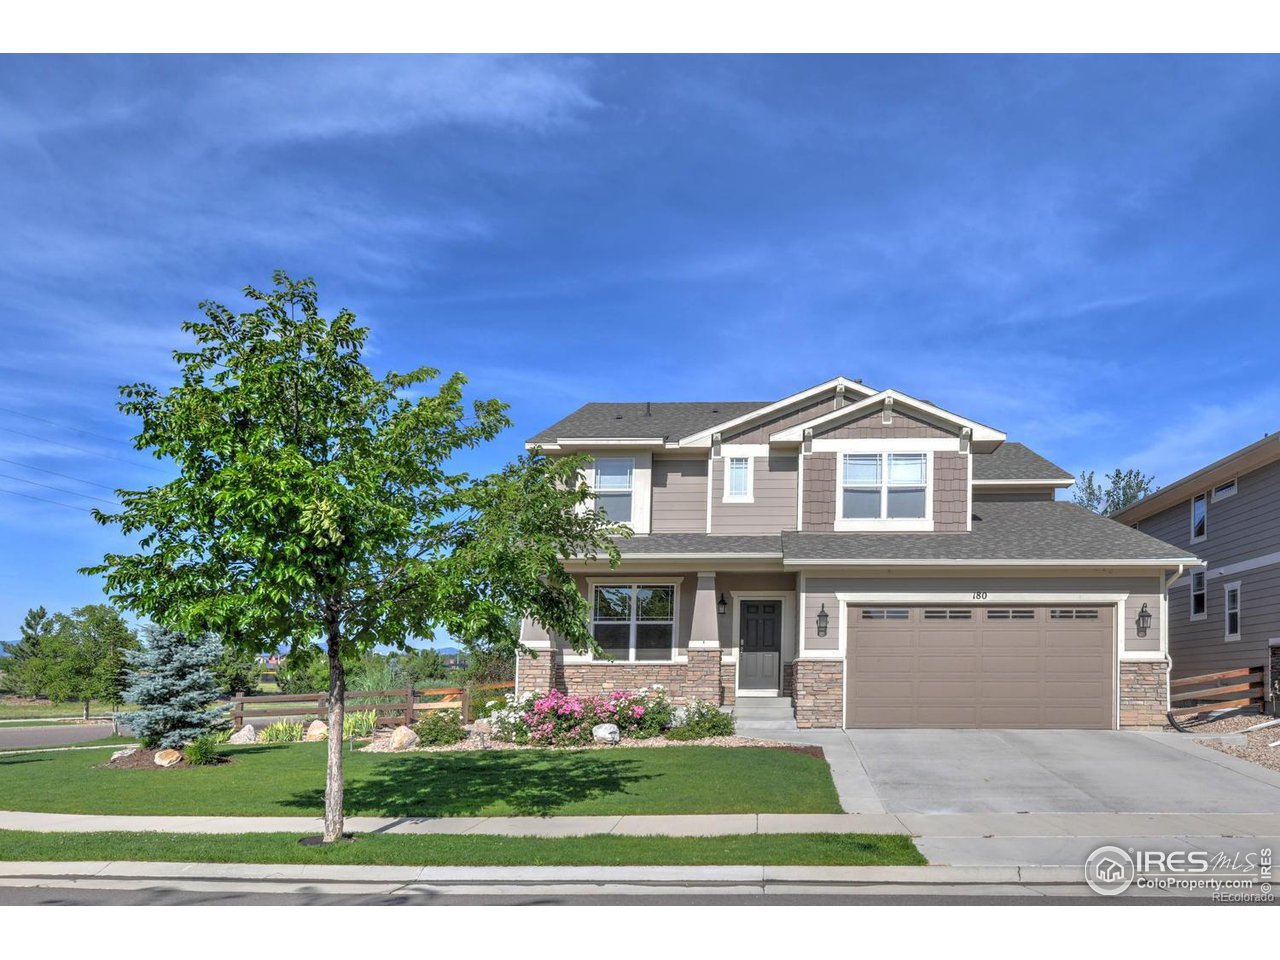 180 Westwood Way, Erie CO 80516